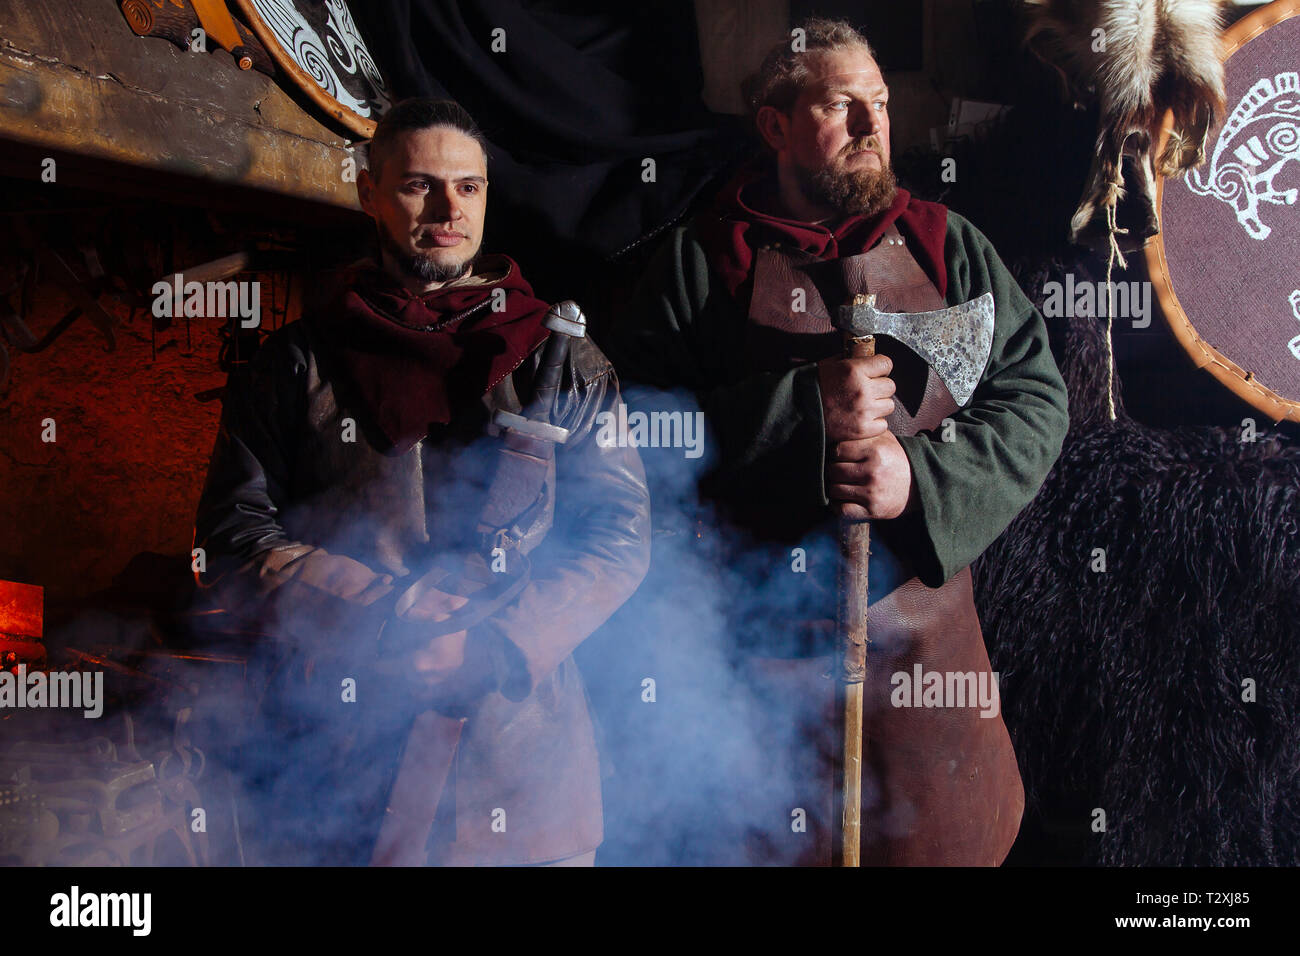 Two men in a warrior's clothes is in the smithy on the background of fire and with smoke. Serious militant Viking stands with a weapon in his hands. - Stock Image